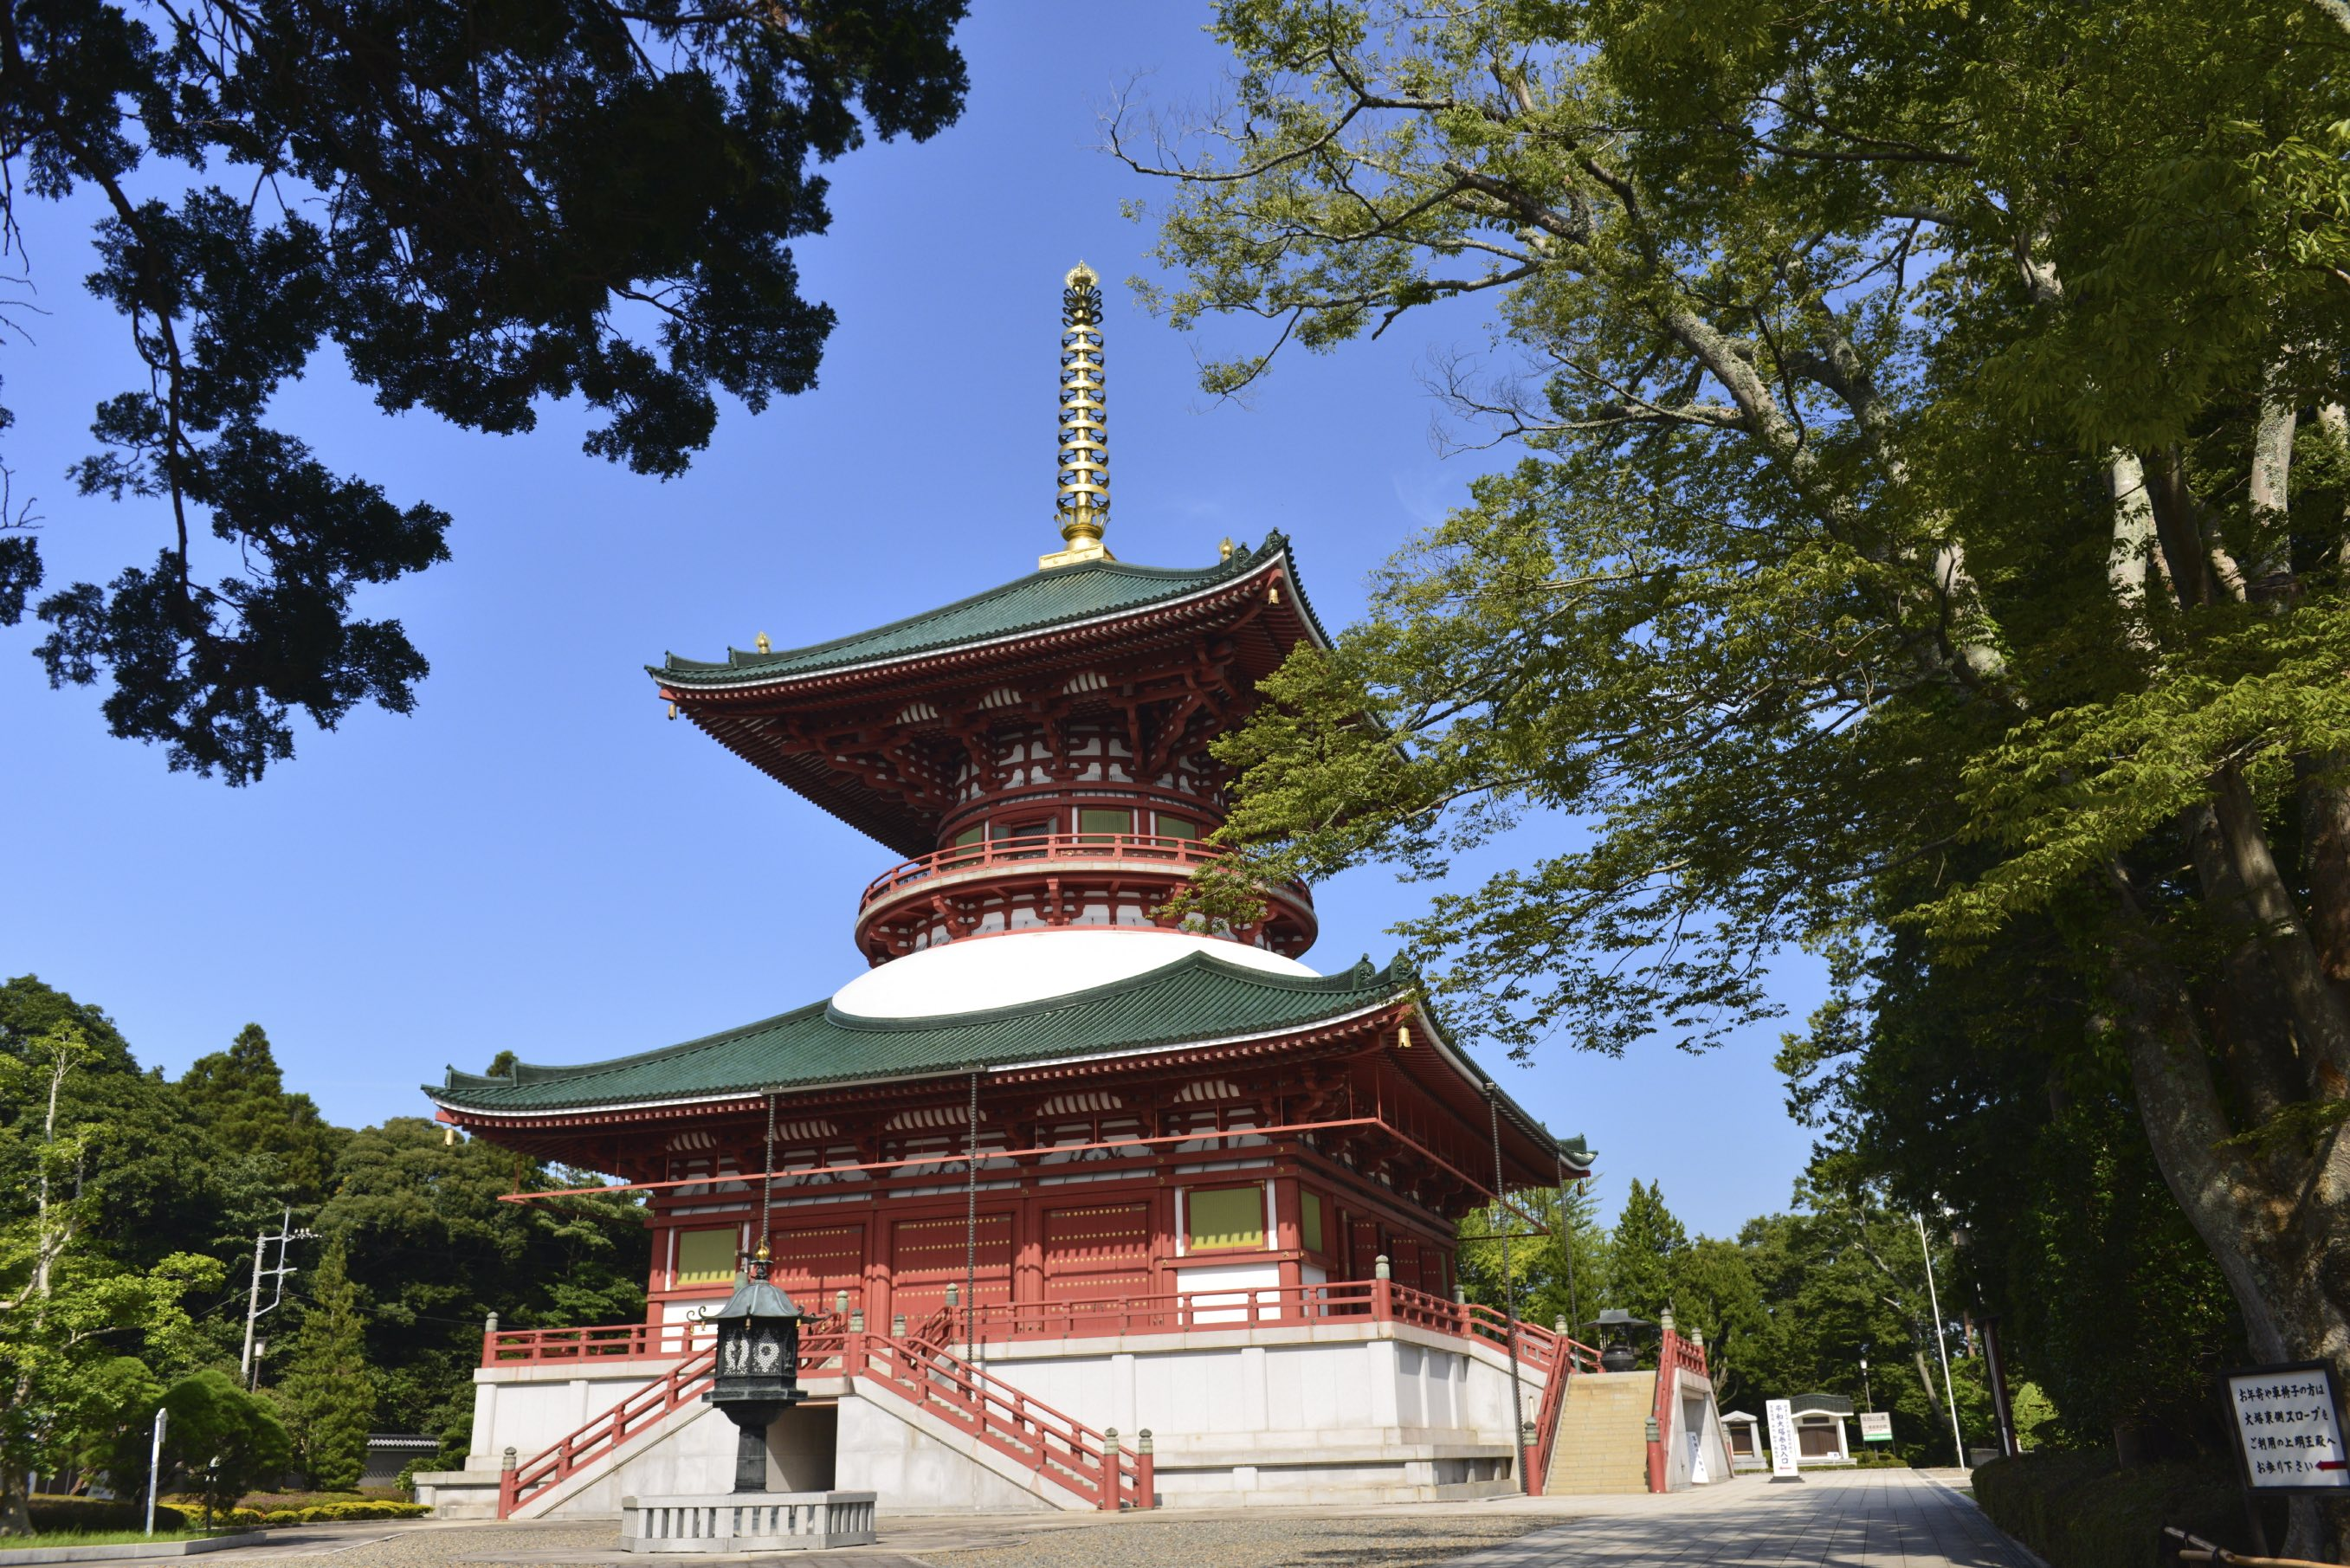 The Great Pagoda of Peace at Narita temple.